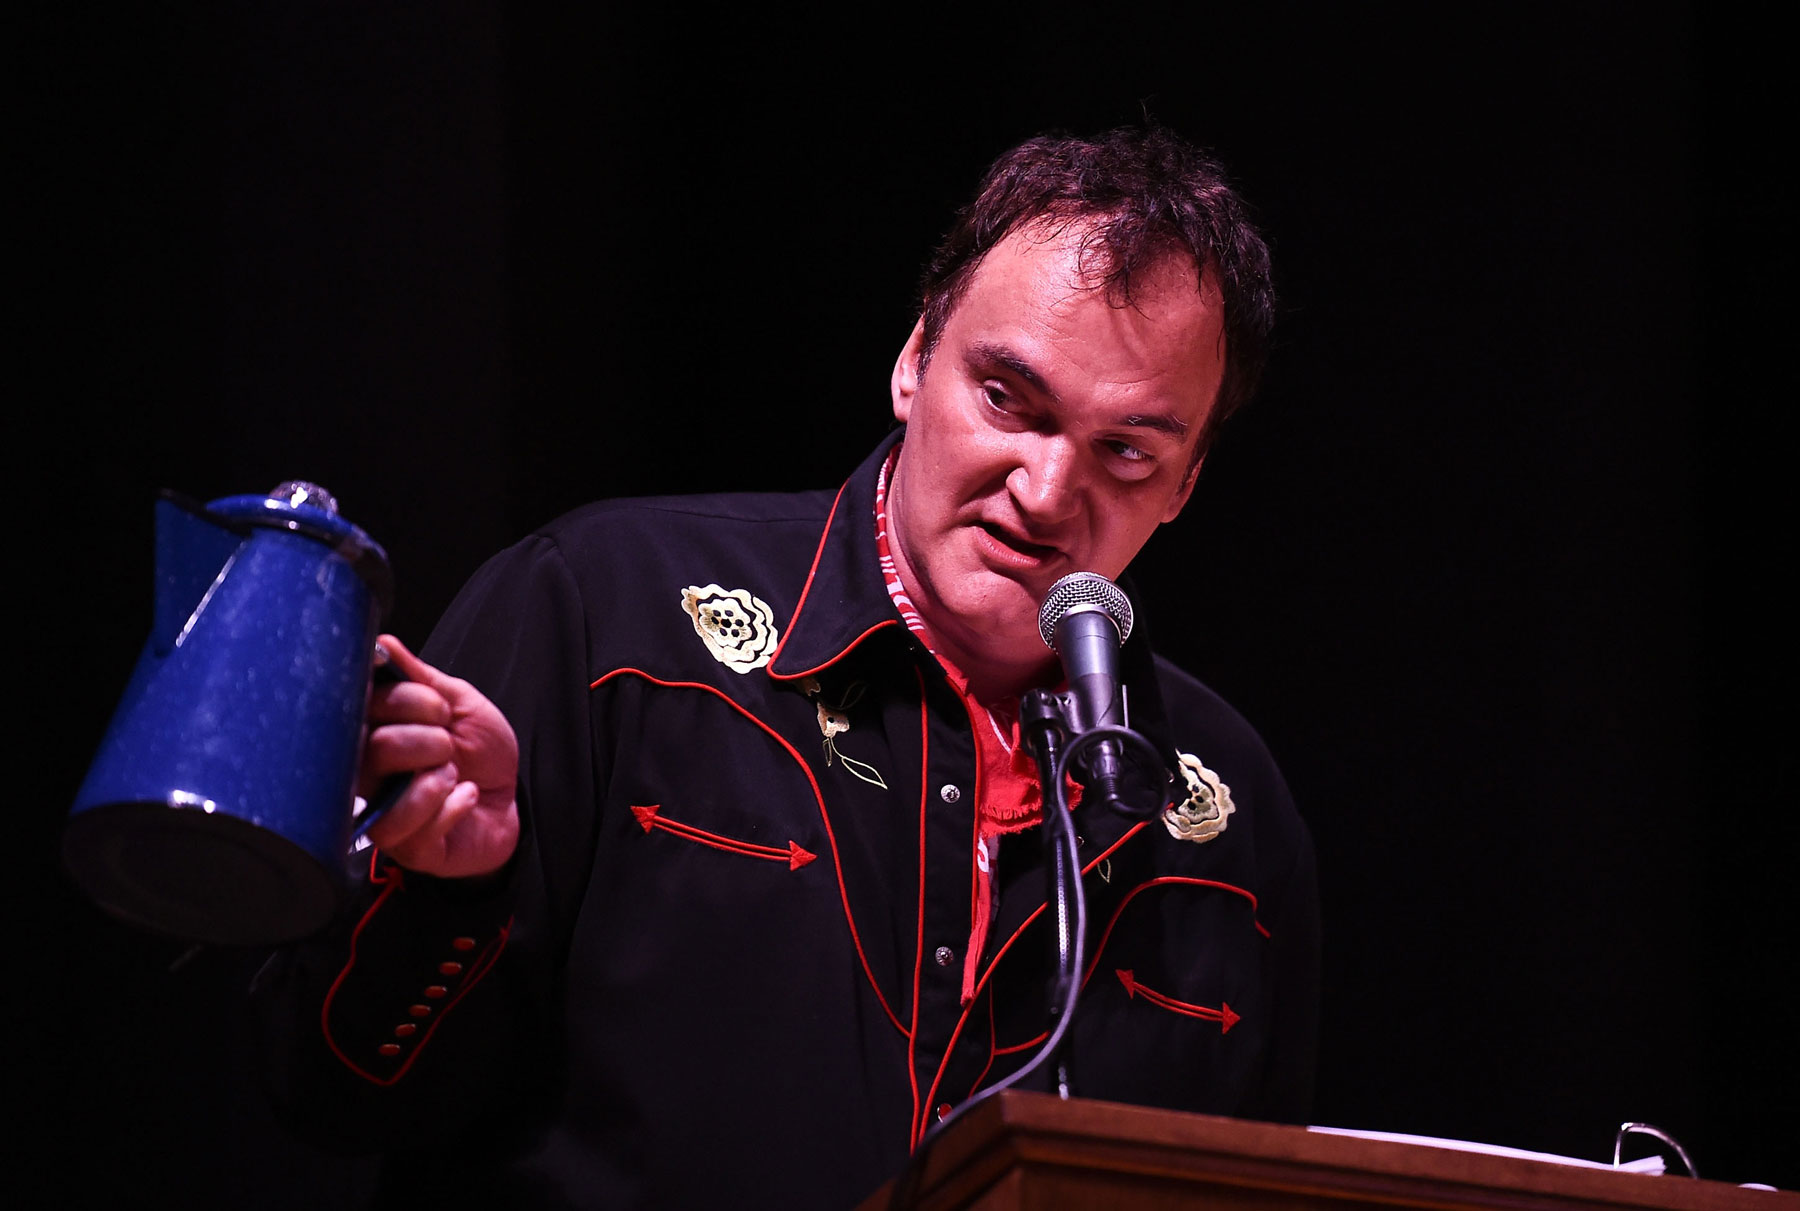 Quentin Tarantino Gets Back in the Saddle With 'Hateful Eight' Western